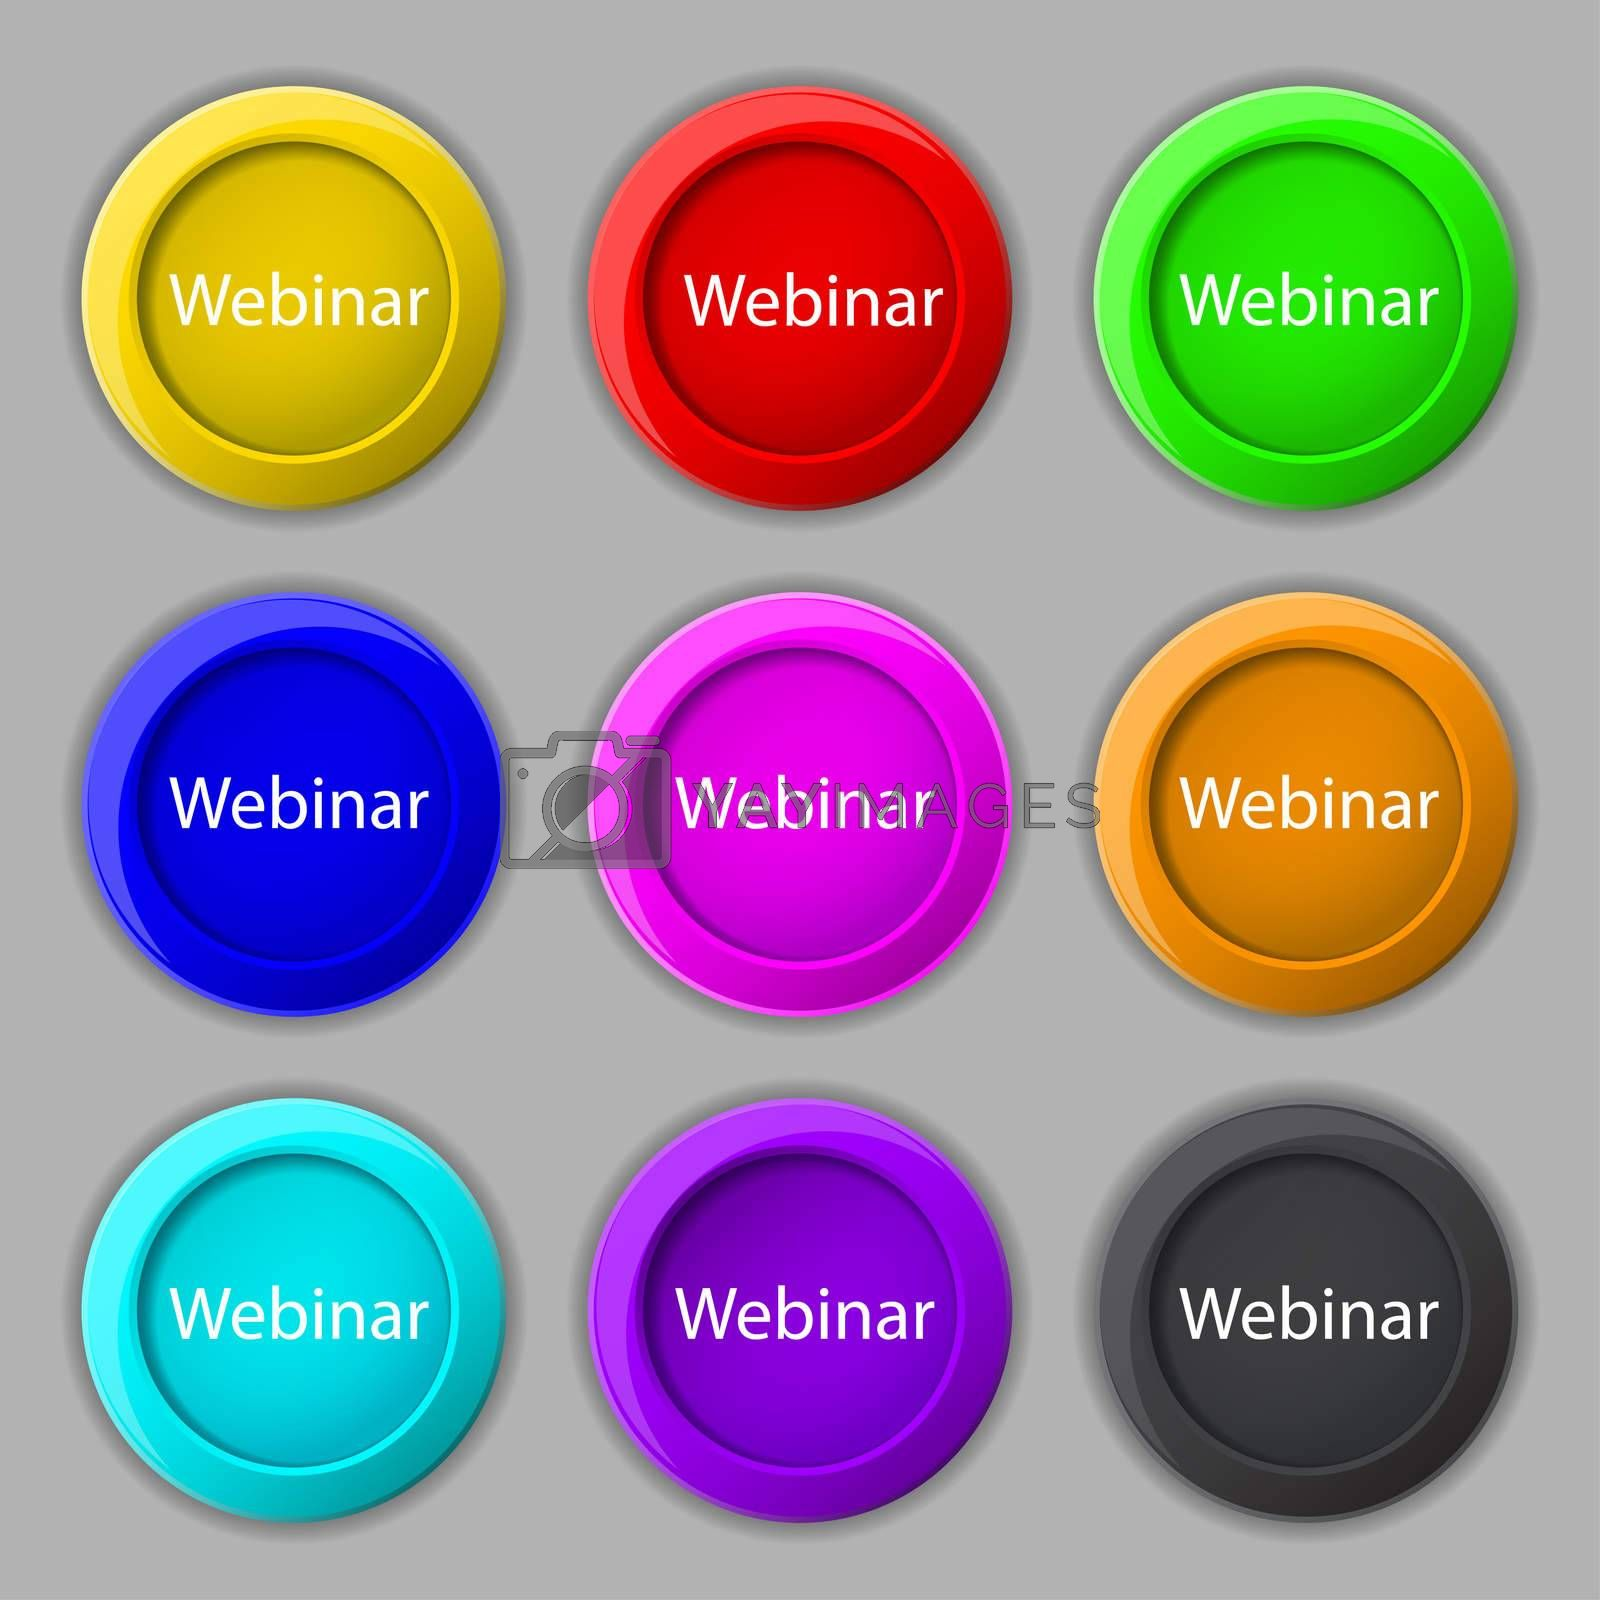 Webinar web camera sign icon. Online Web-study symbol. Website e-learning navigation. Set of colored buttons  by Serhii Lohvyniuk